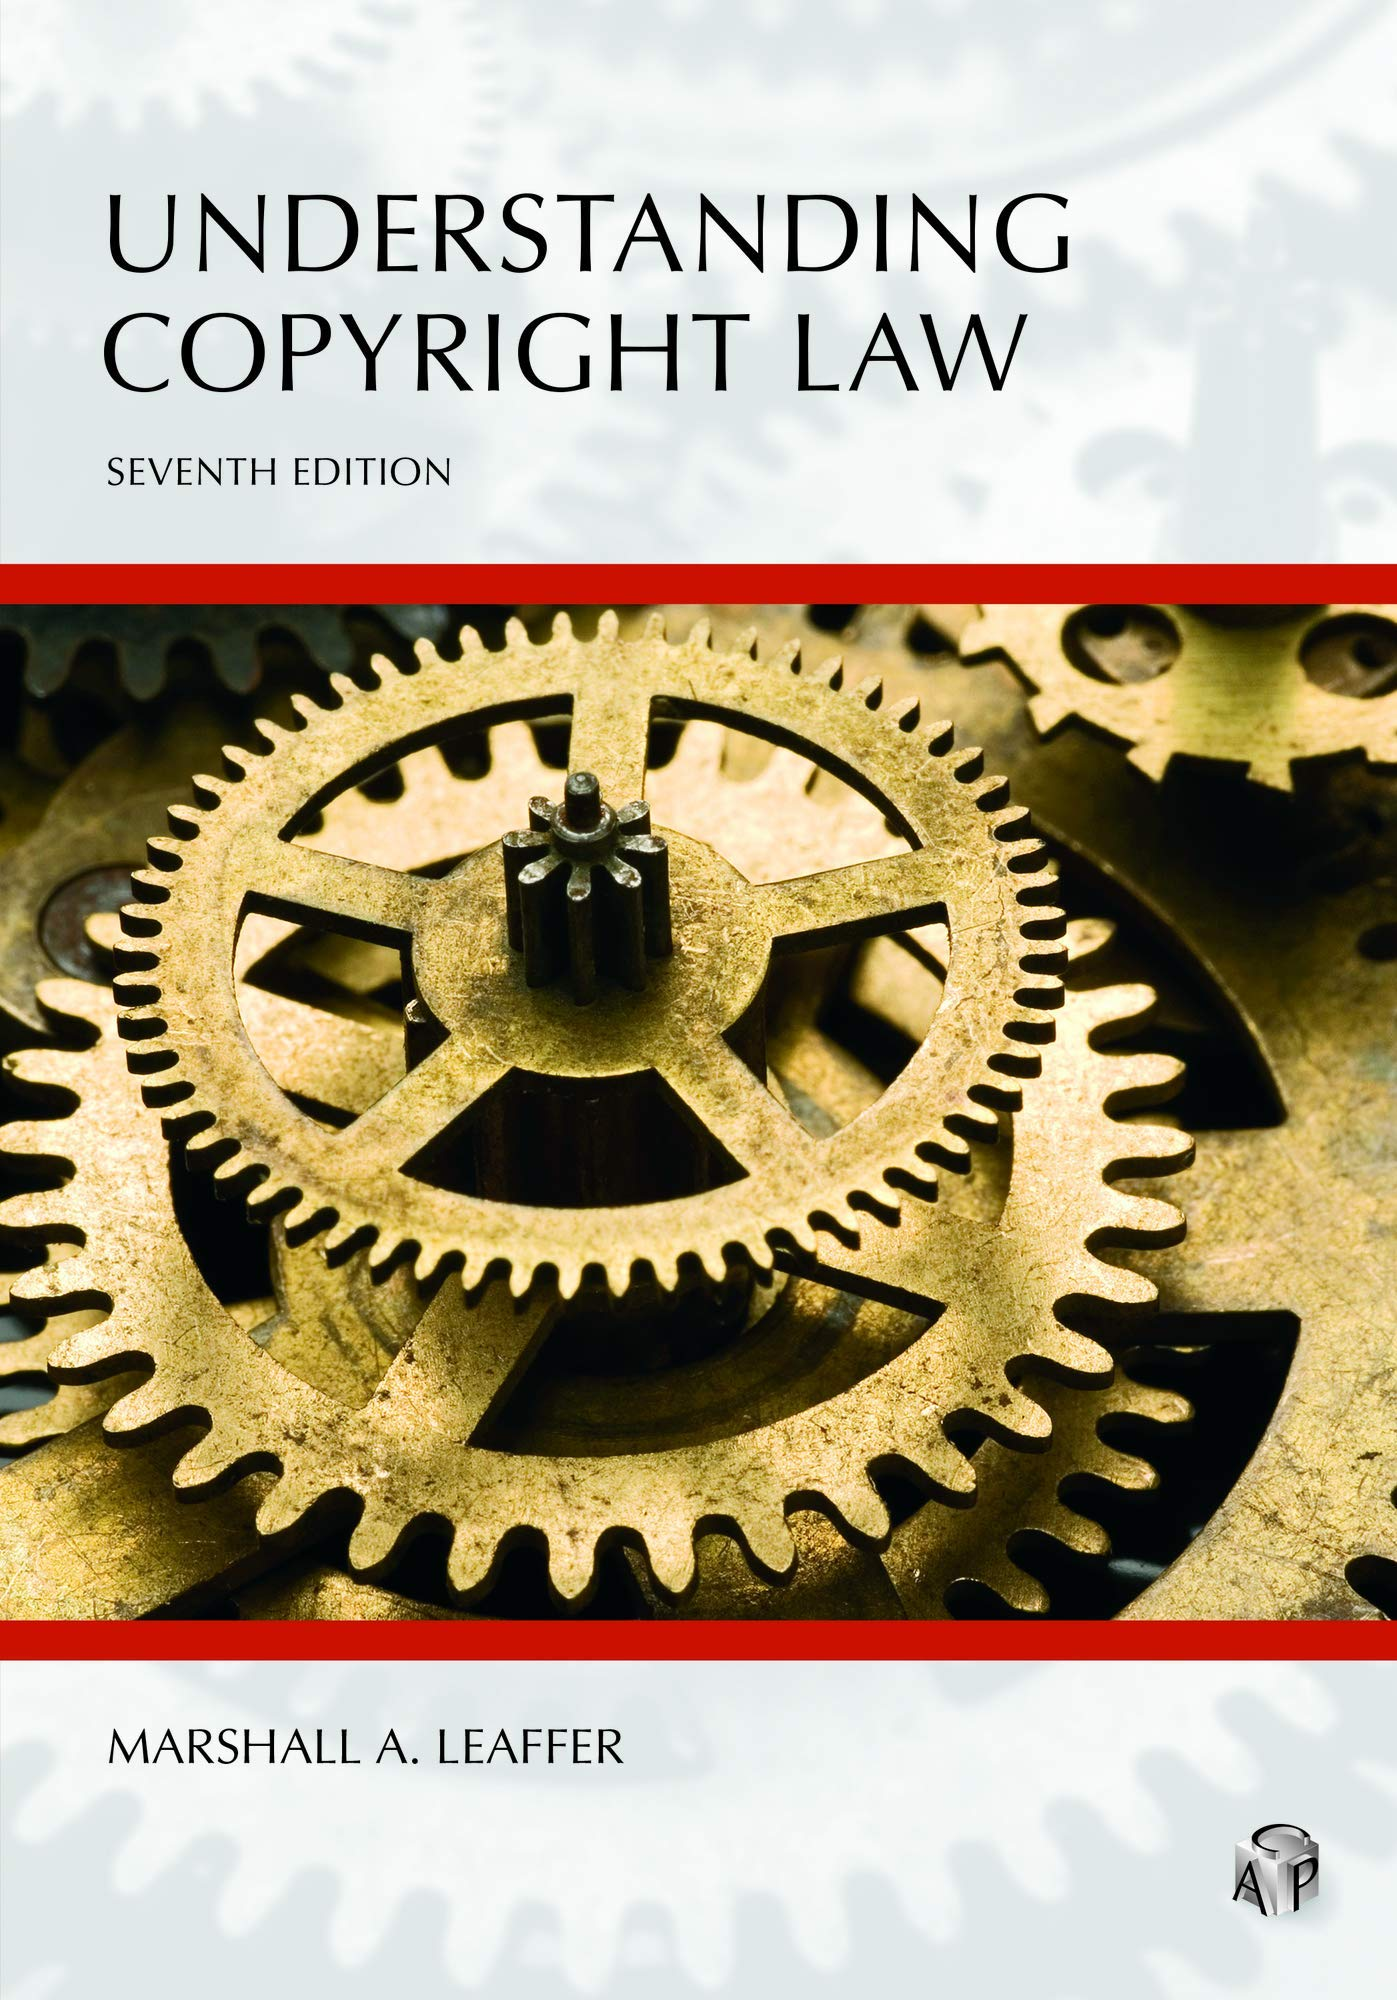 Understanding Copyright Law, Seventh Edition by Carolina Academic Press